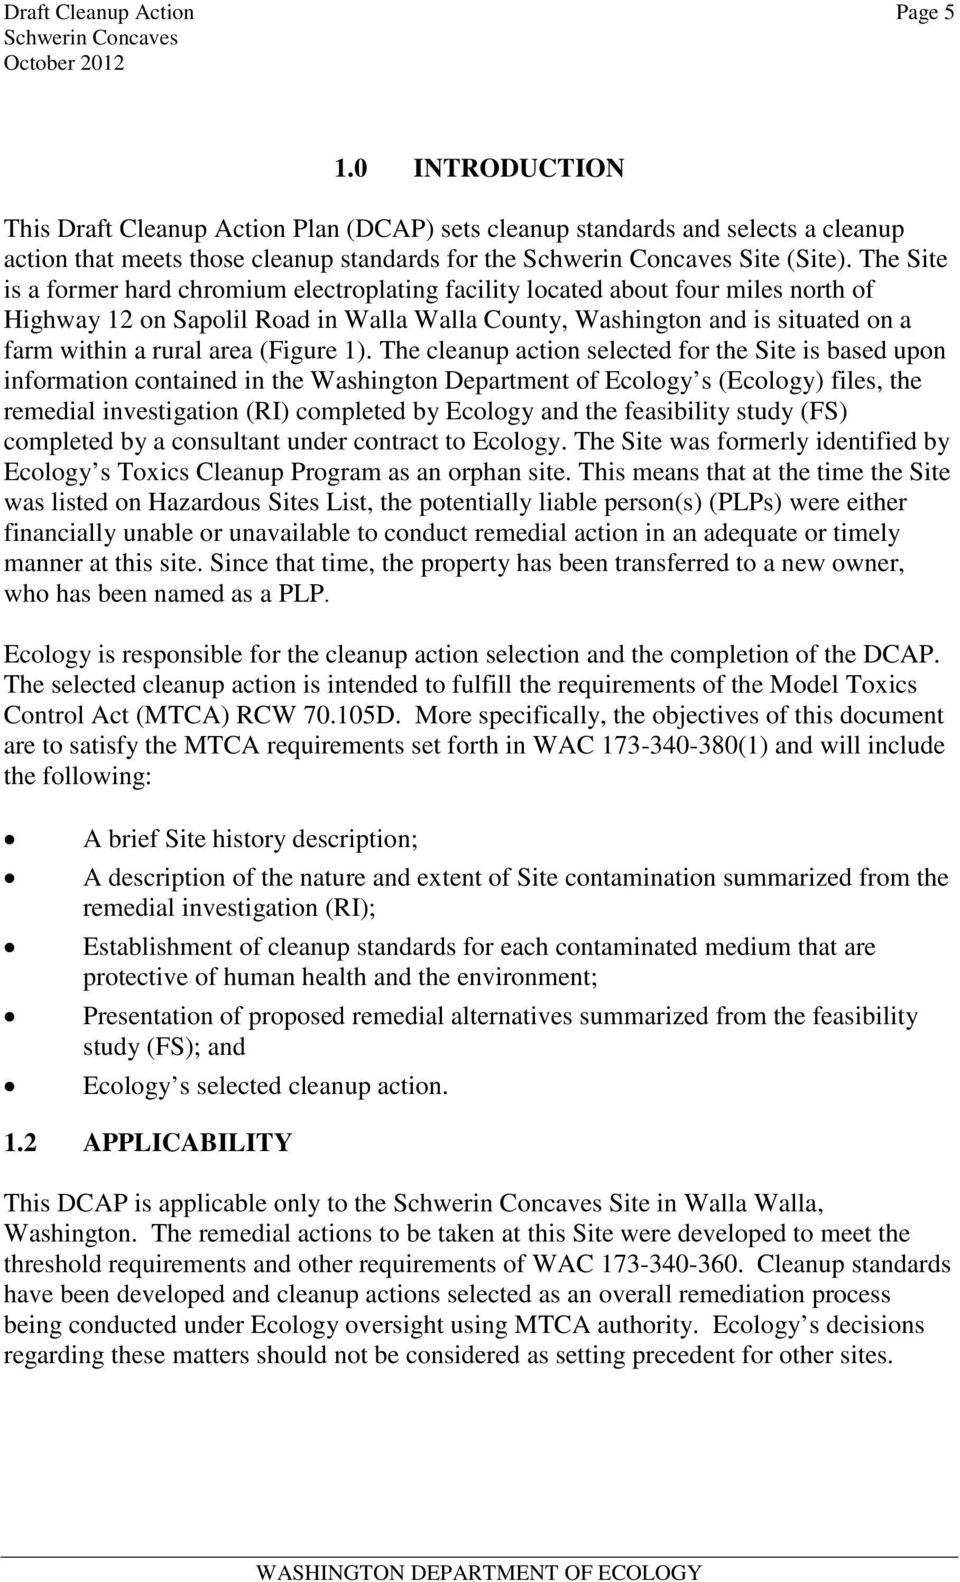 DRAFT CLEANUP ACTION PLAN SCHWERIN CONCAVES SITE CSID 3956